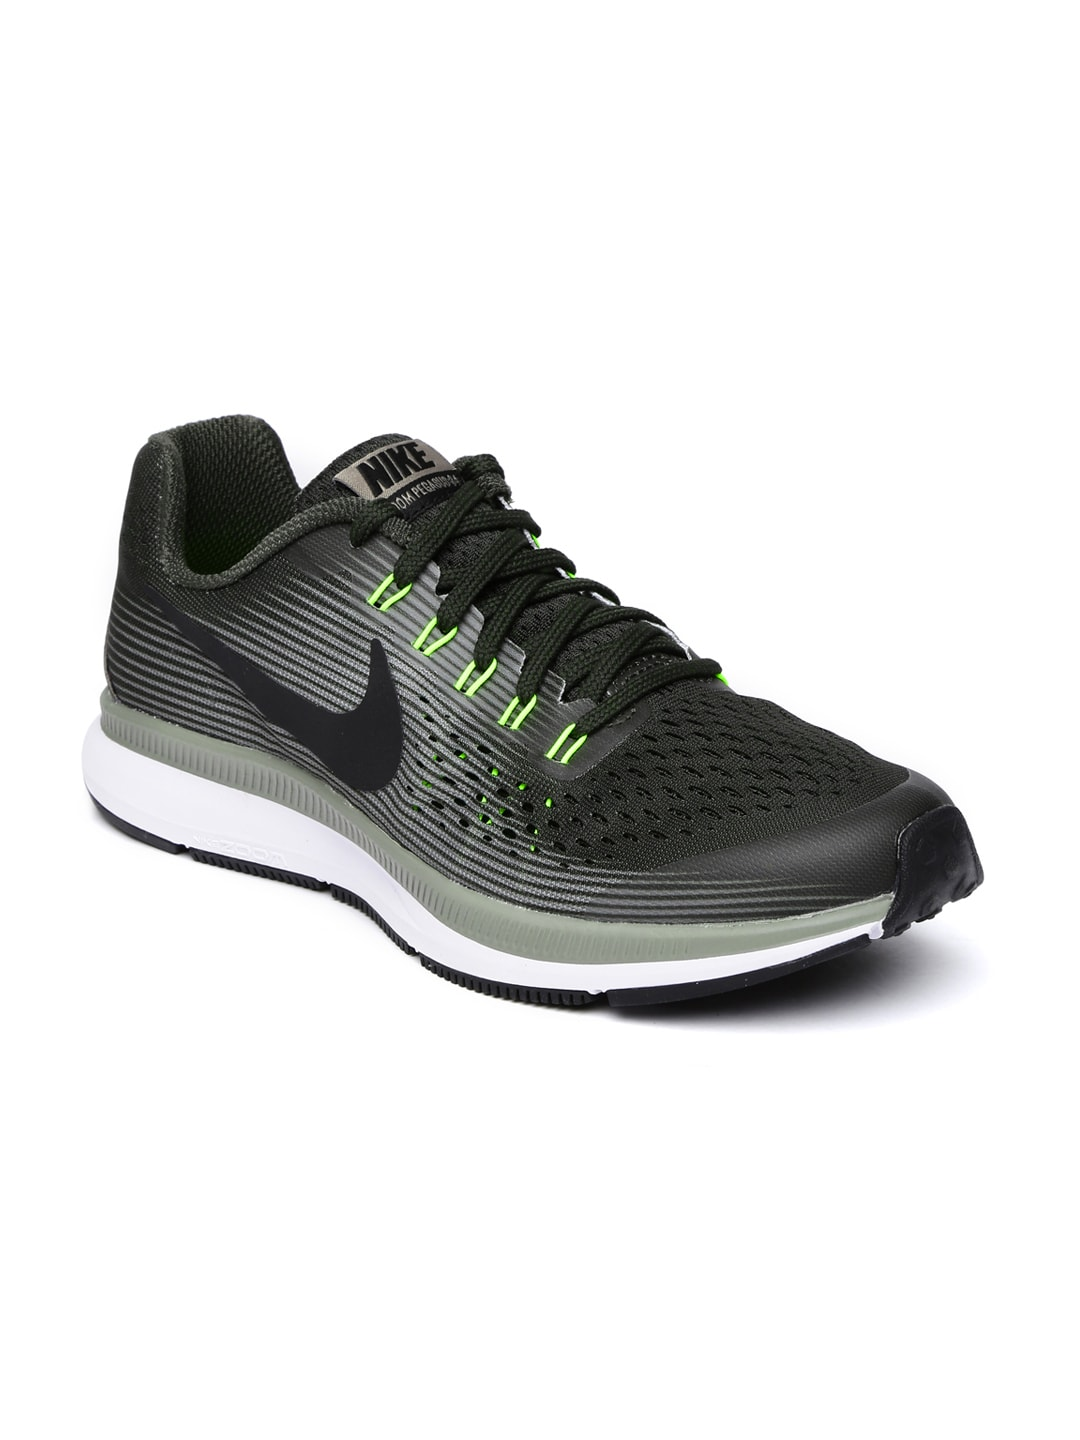 Nike Boys Olive Green Zoom Pegasus 34 Running Shoes